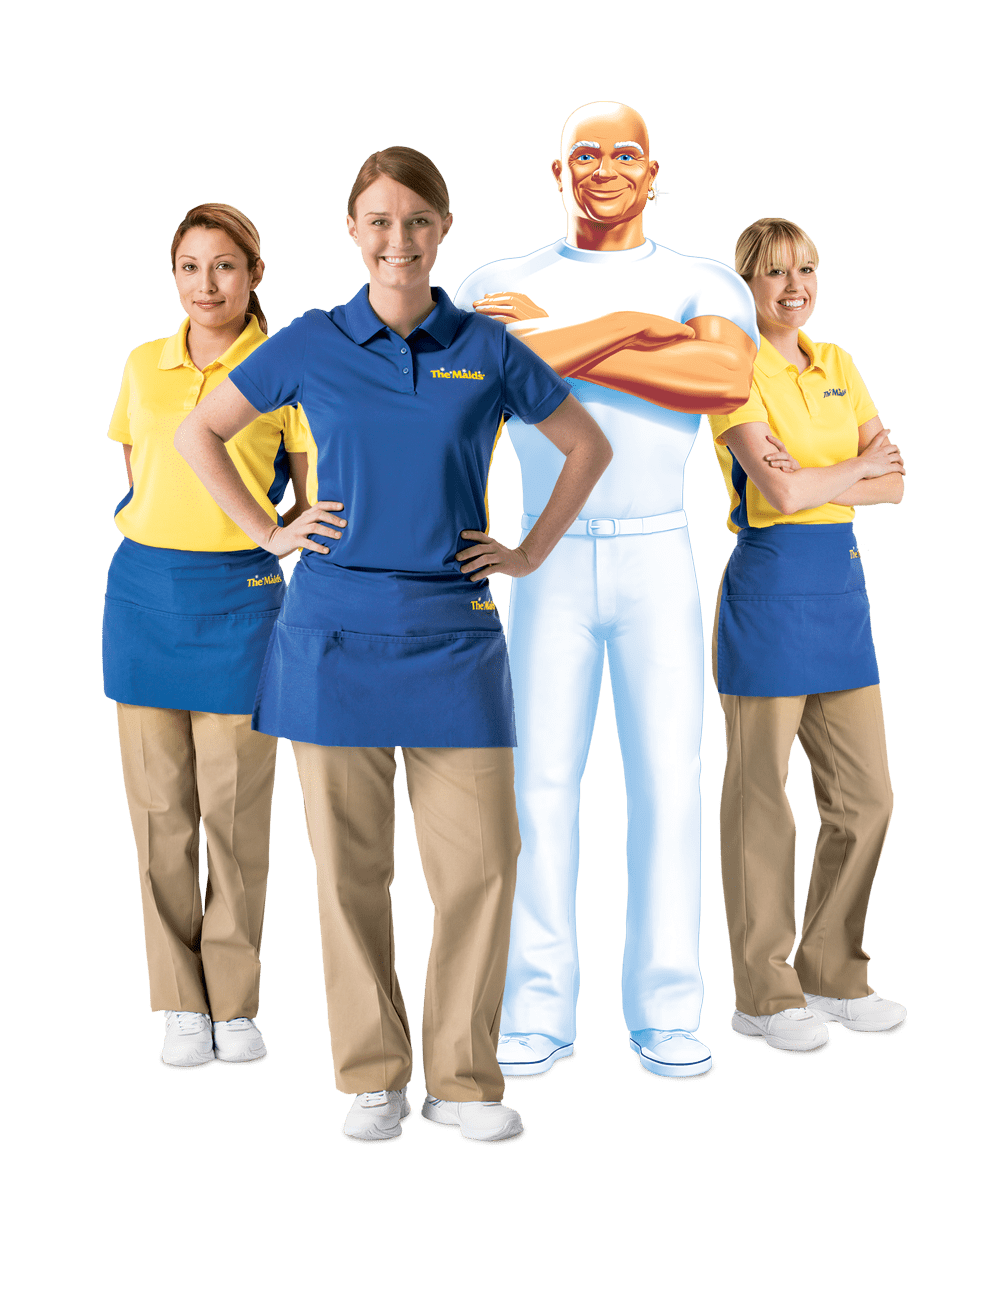 The Maids House Cleaning - The Maids in Simi Valley Home Cleaning